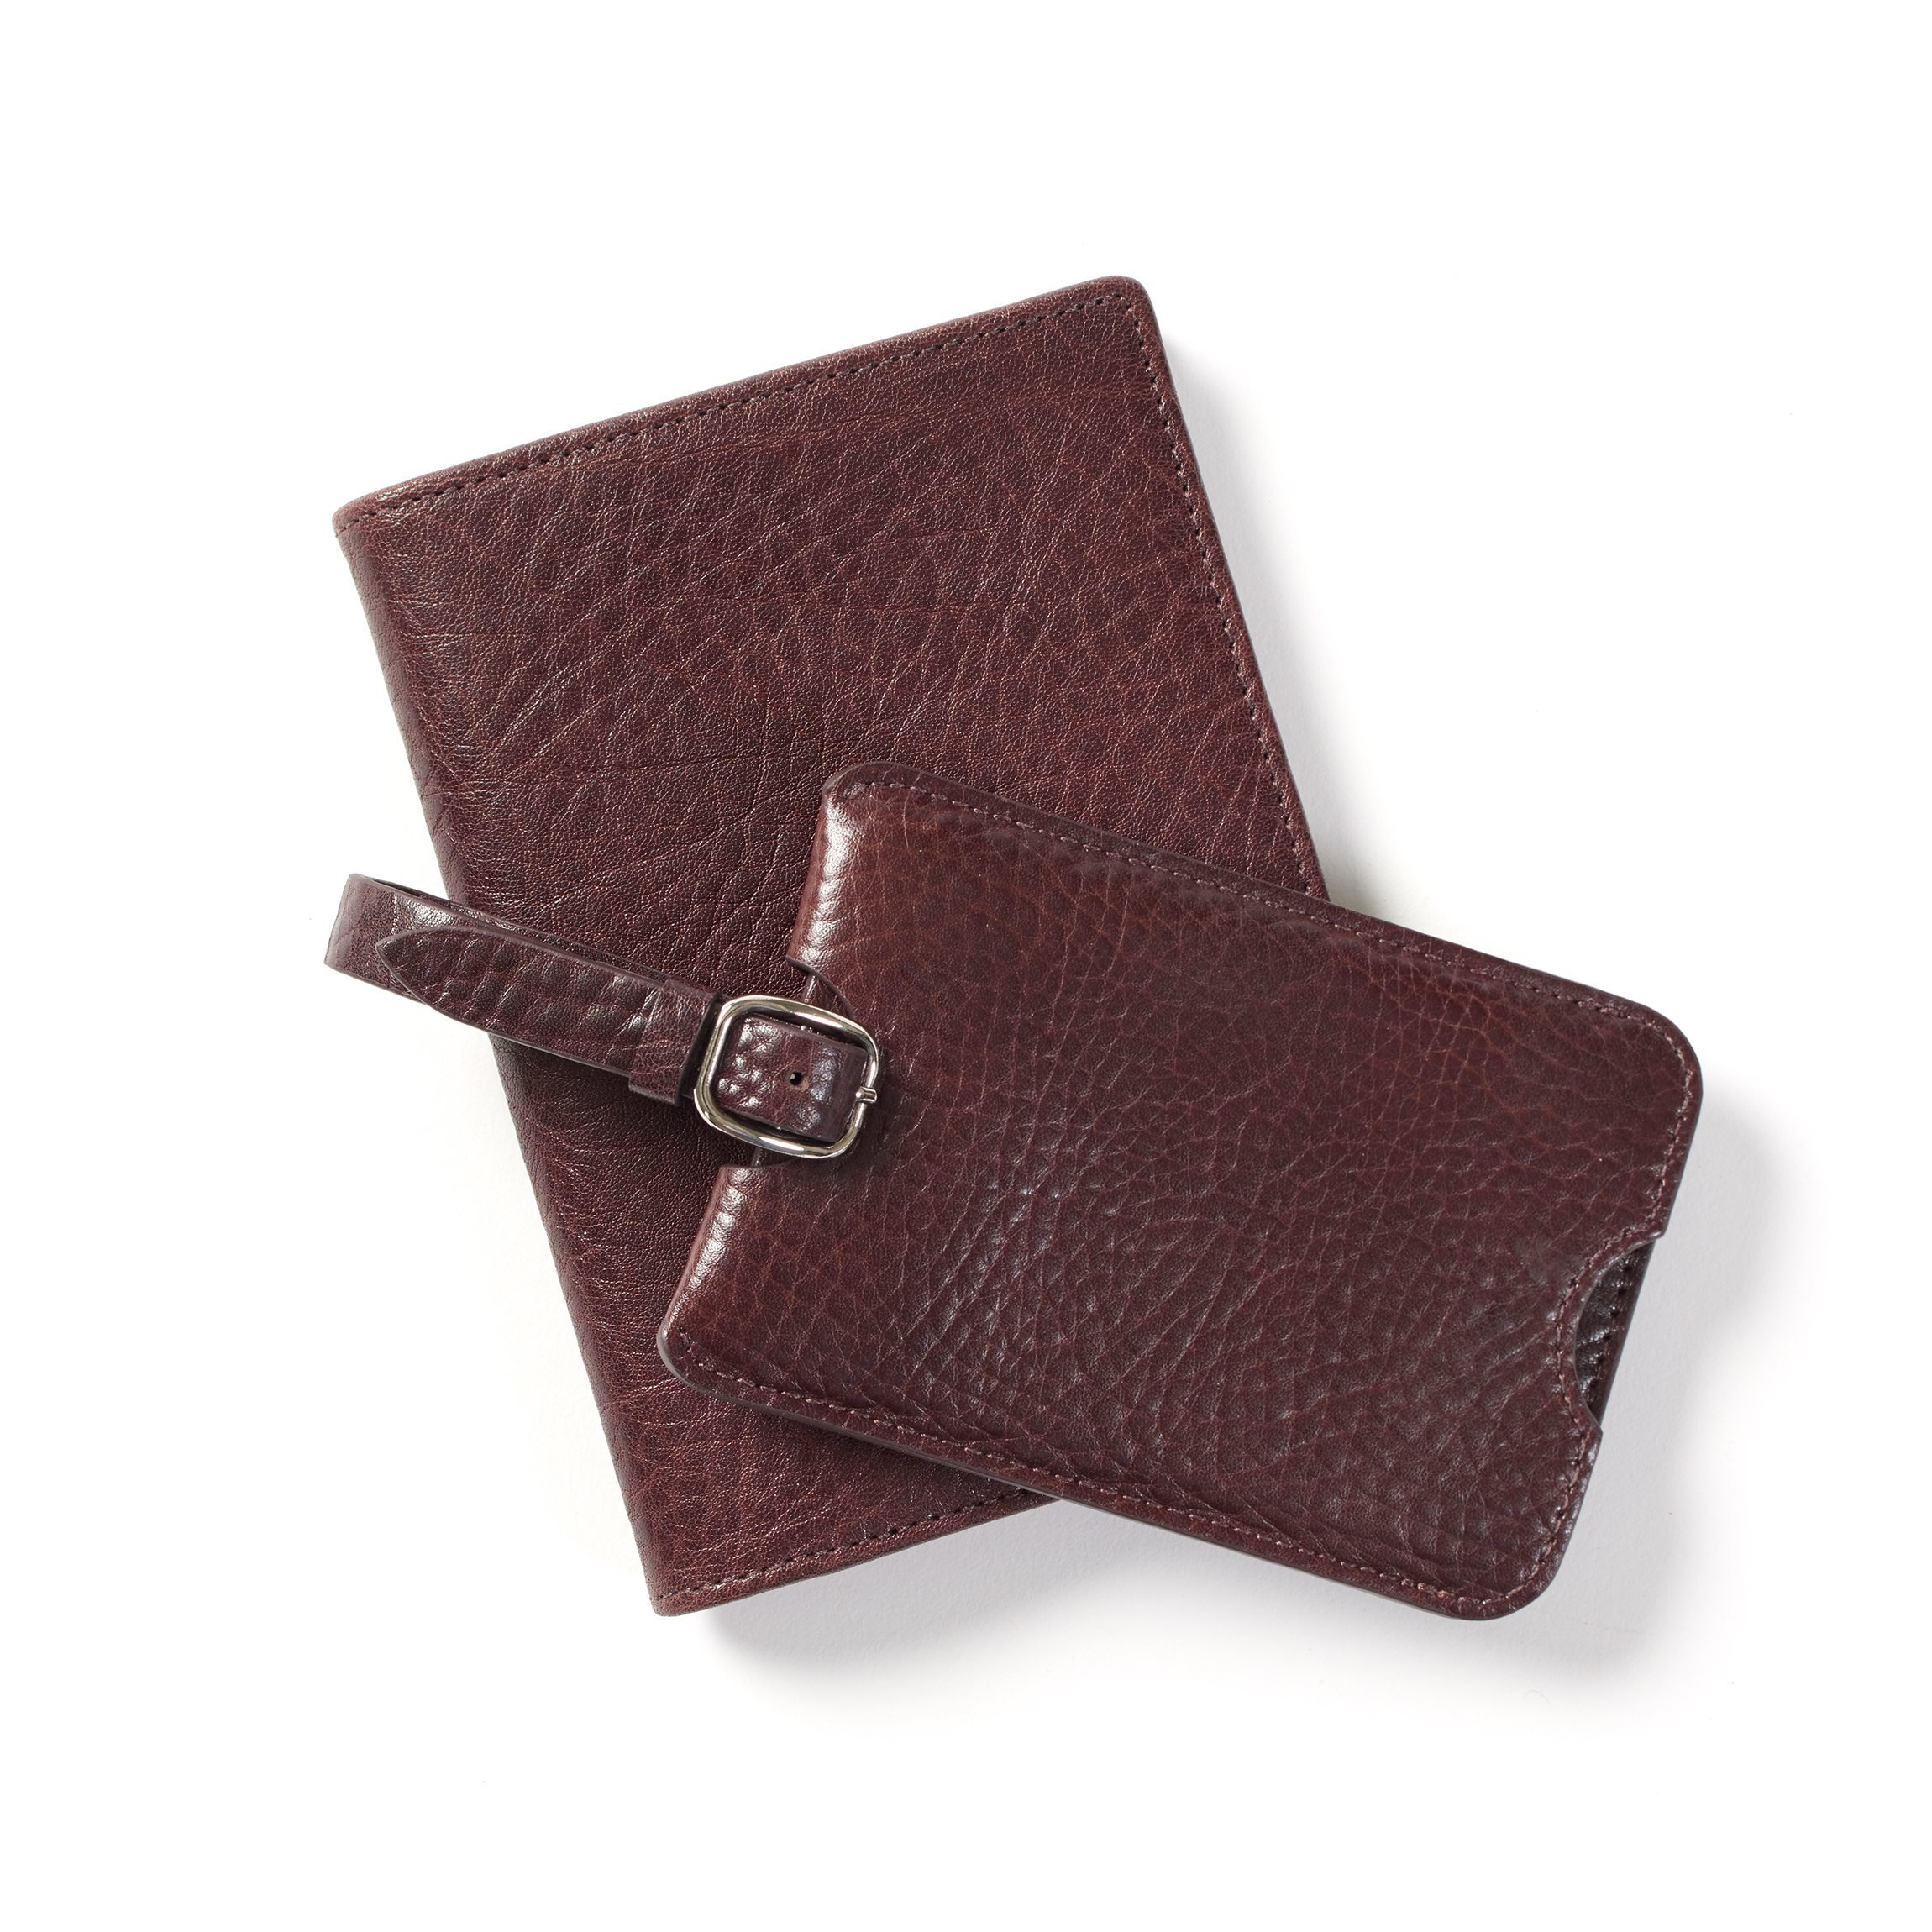 Deluxe Passport Cover + Luggage Tag Set - Italian Leather - Espresso (brown) by Leatherology